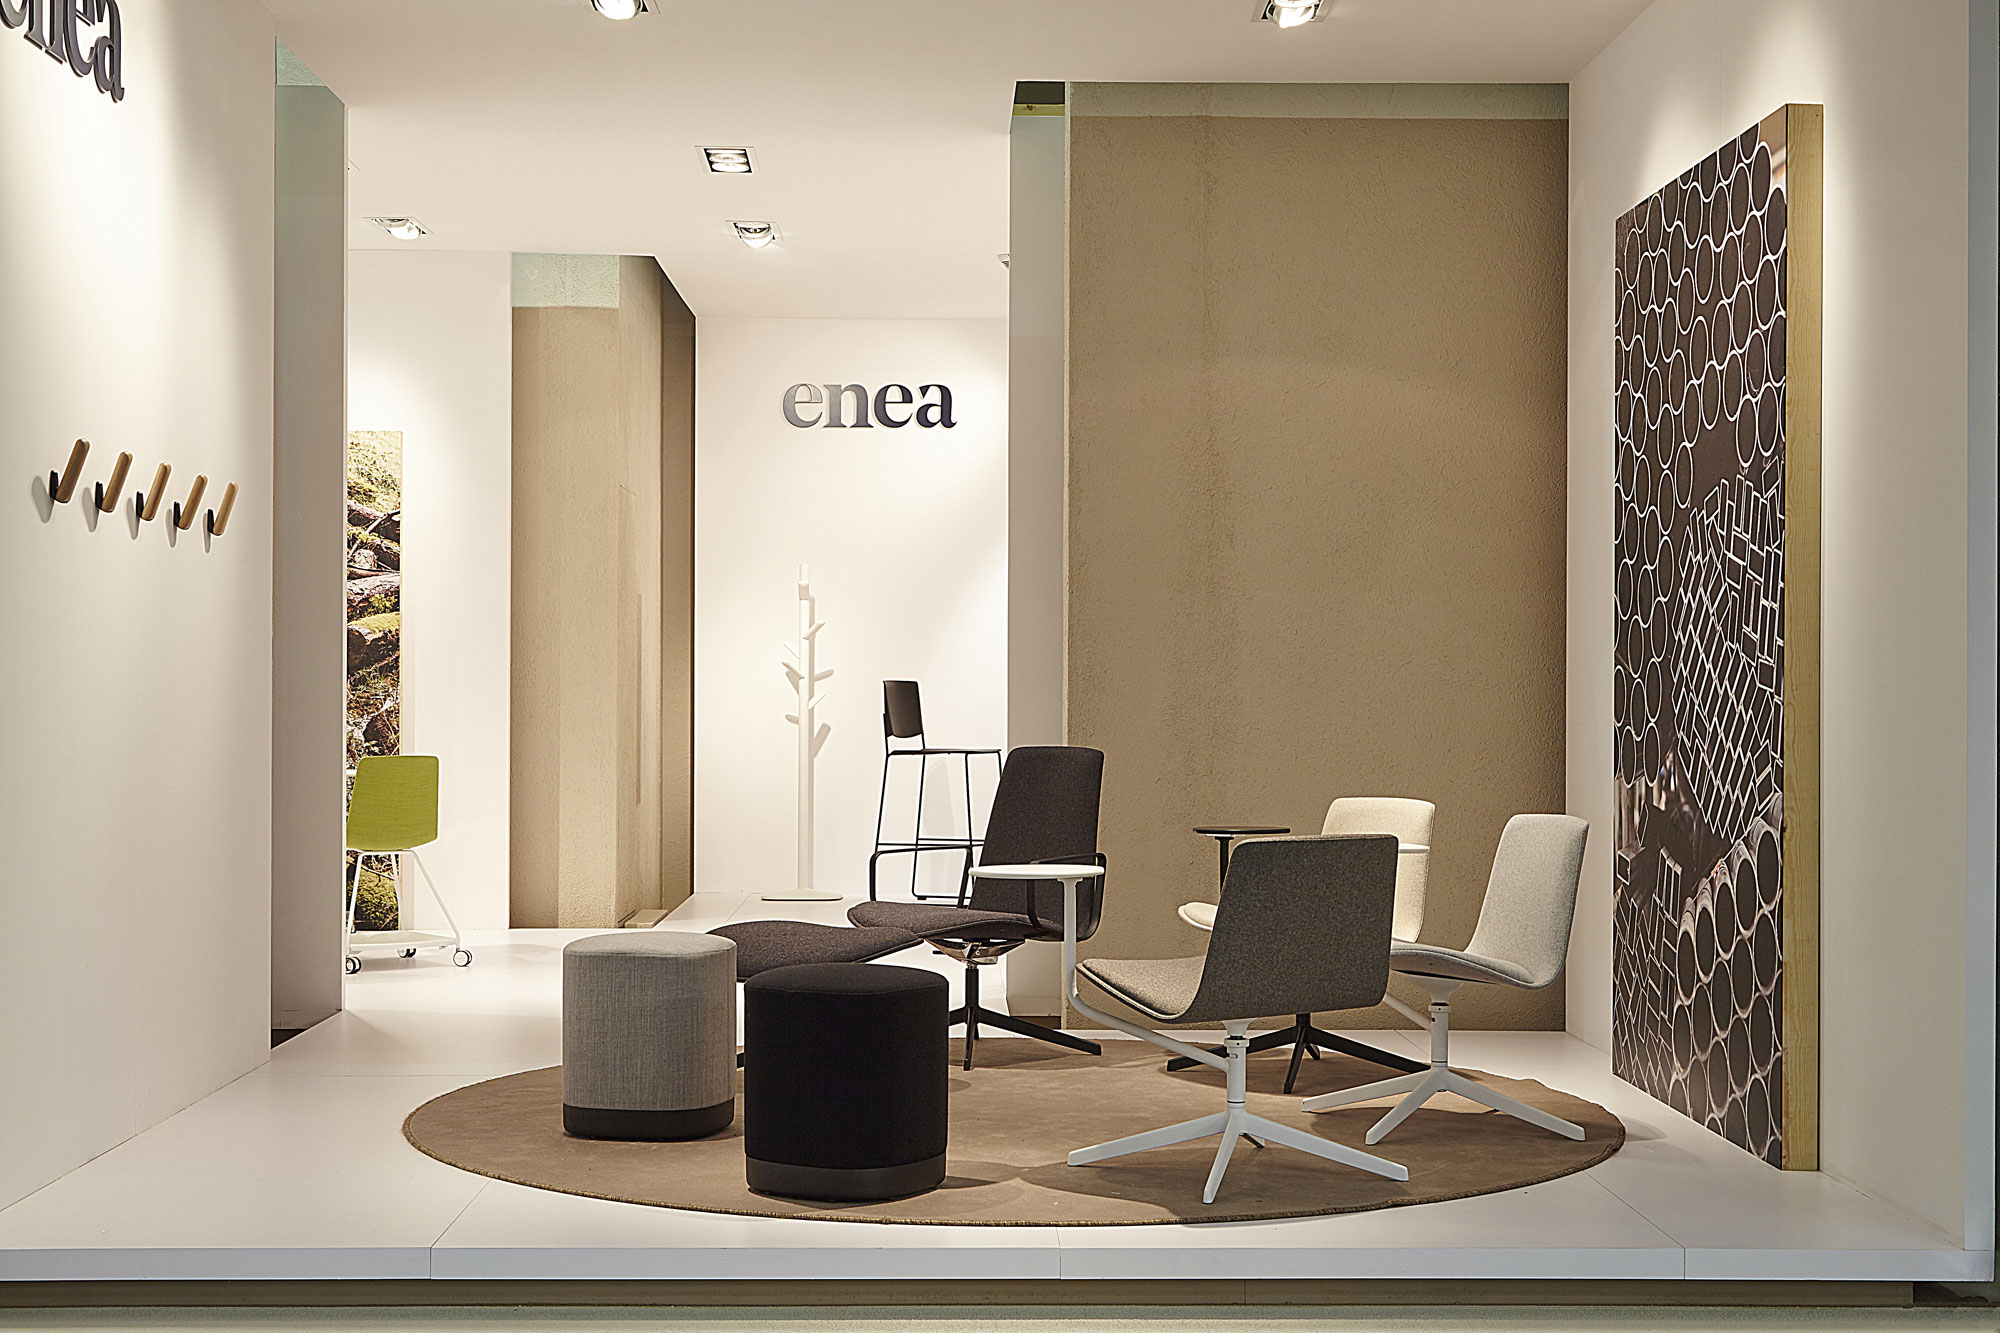 ENEA's experience at Orgatec 2016, new visions of work